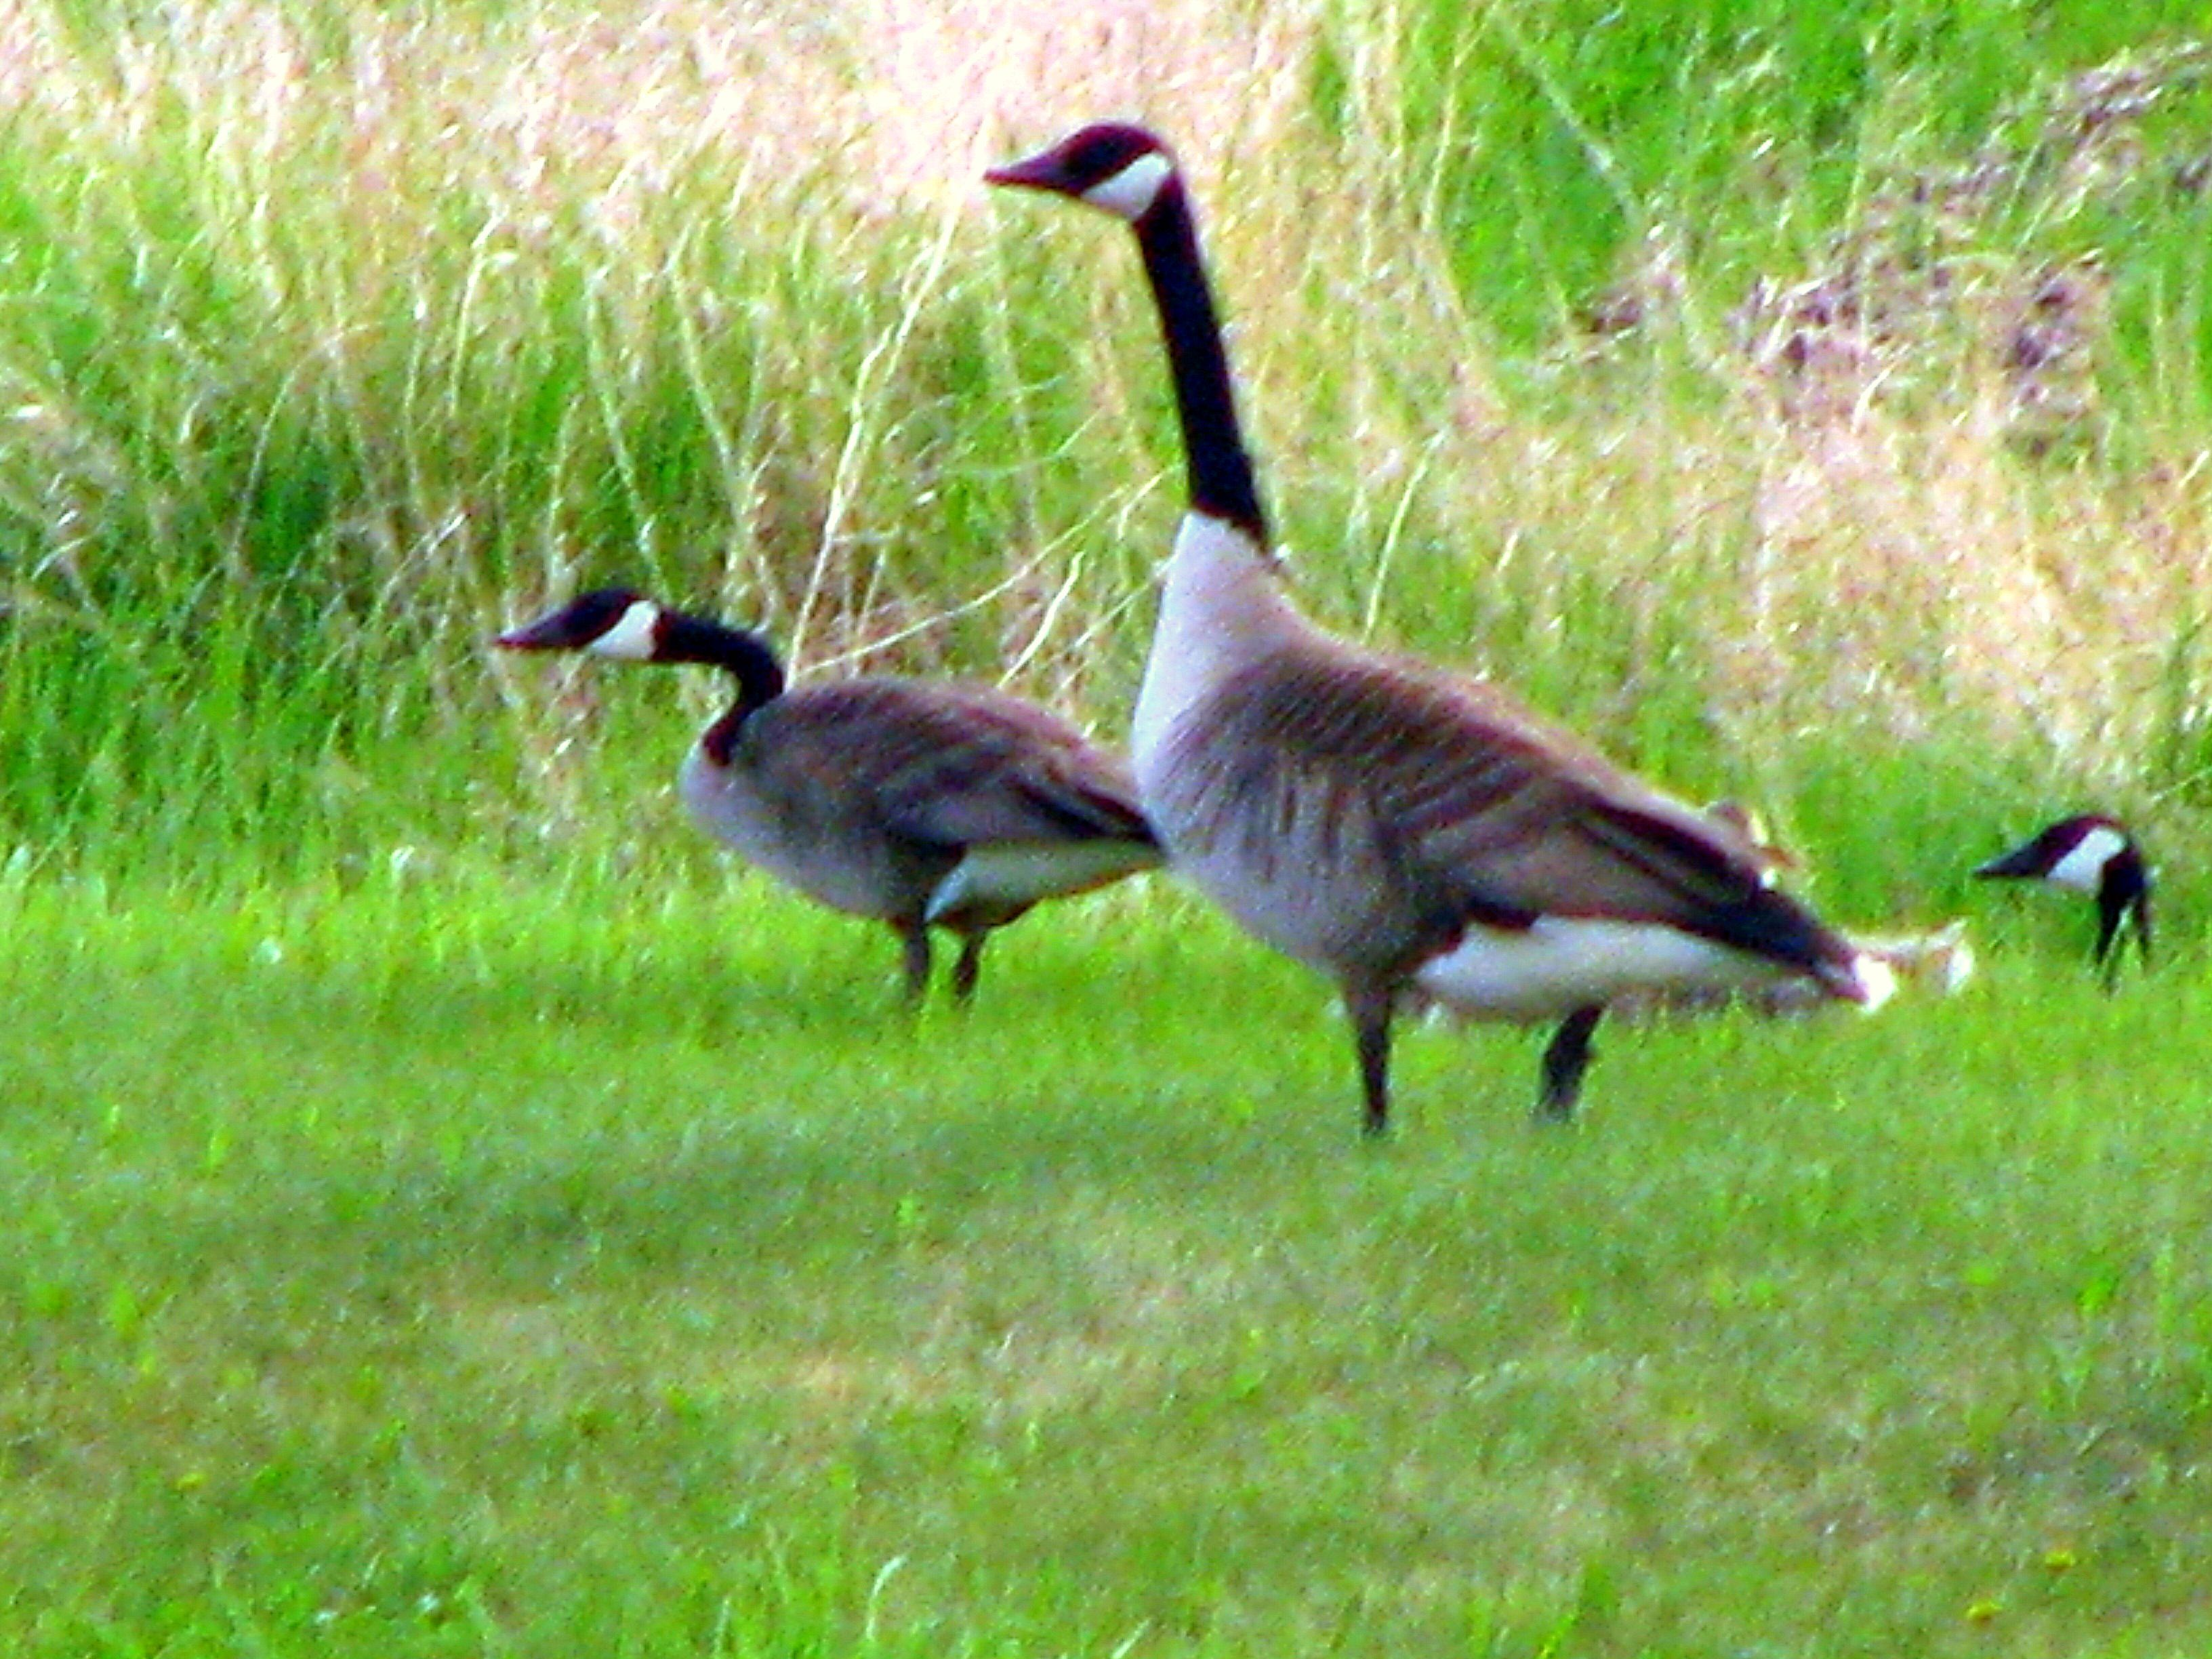 Canada Geese are primarily herbivores but will eat small